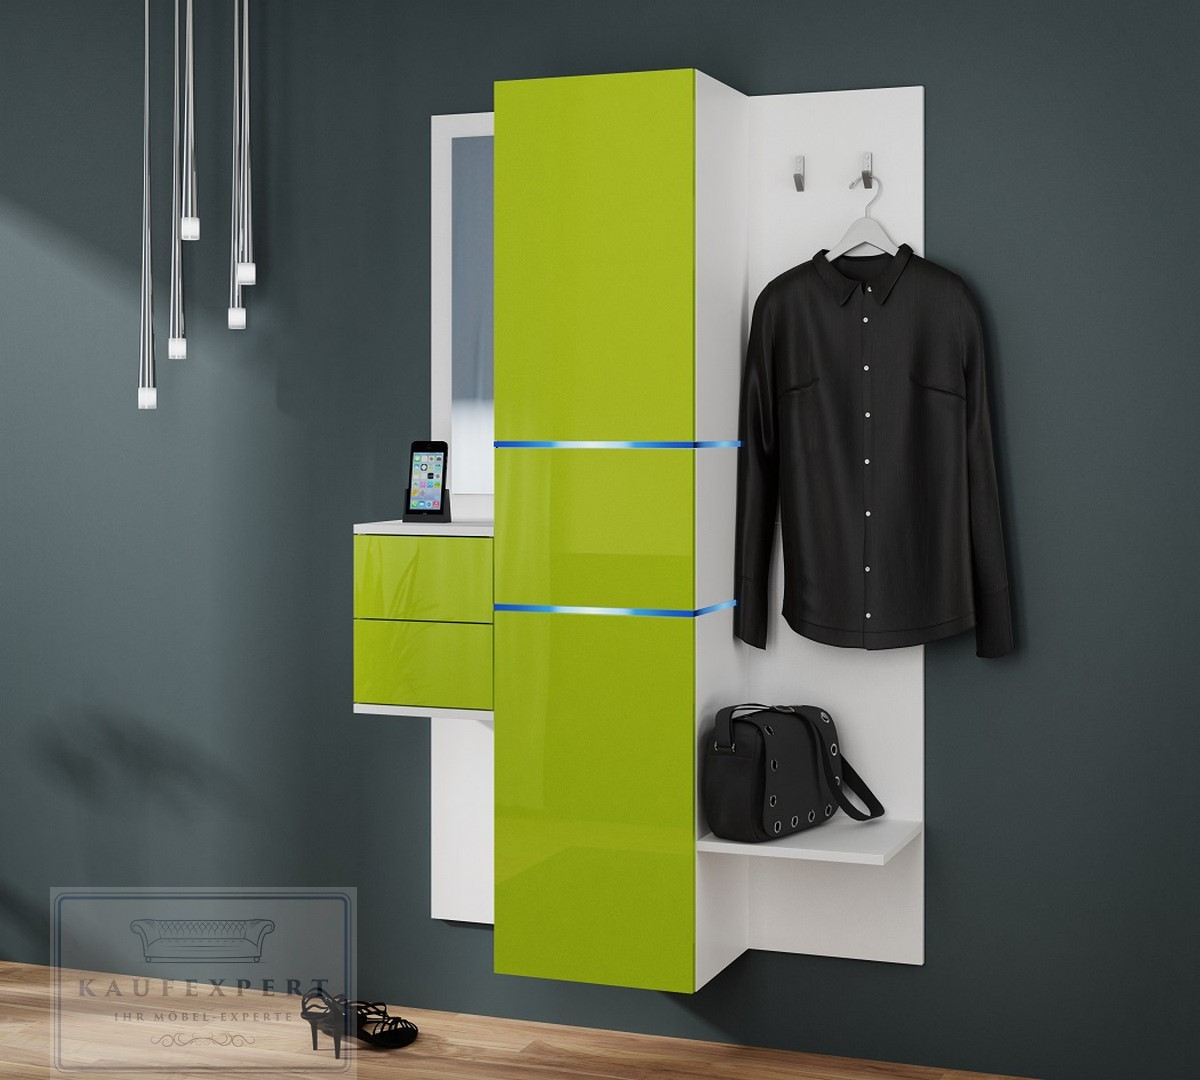 kaufexpert garderobe camino lime hochglanz wei mit spiegel led beleuchtung garderoben set. Black Bedroom Furniture Sets. Home Design Ideas